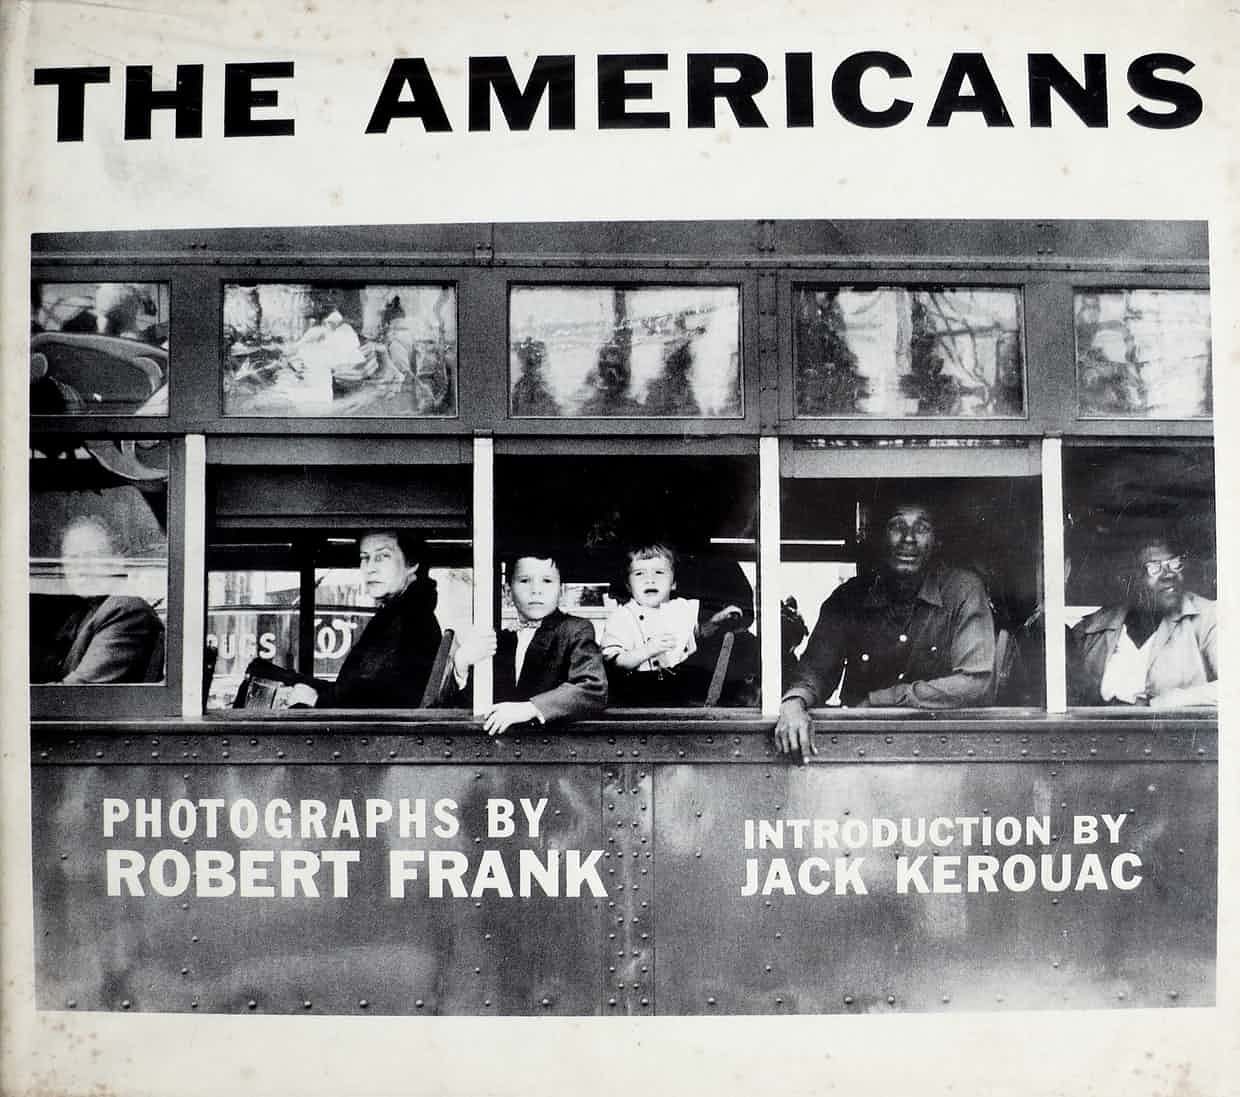 https://www.theguardian.com/artanddesign/2015/dec/15/robert-frank-the-americans-auction